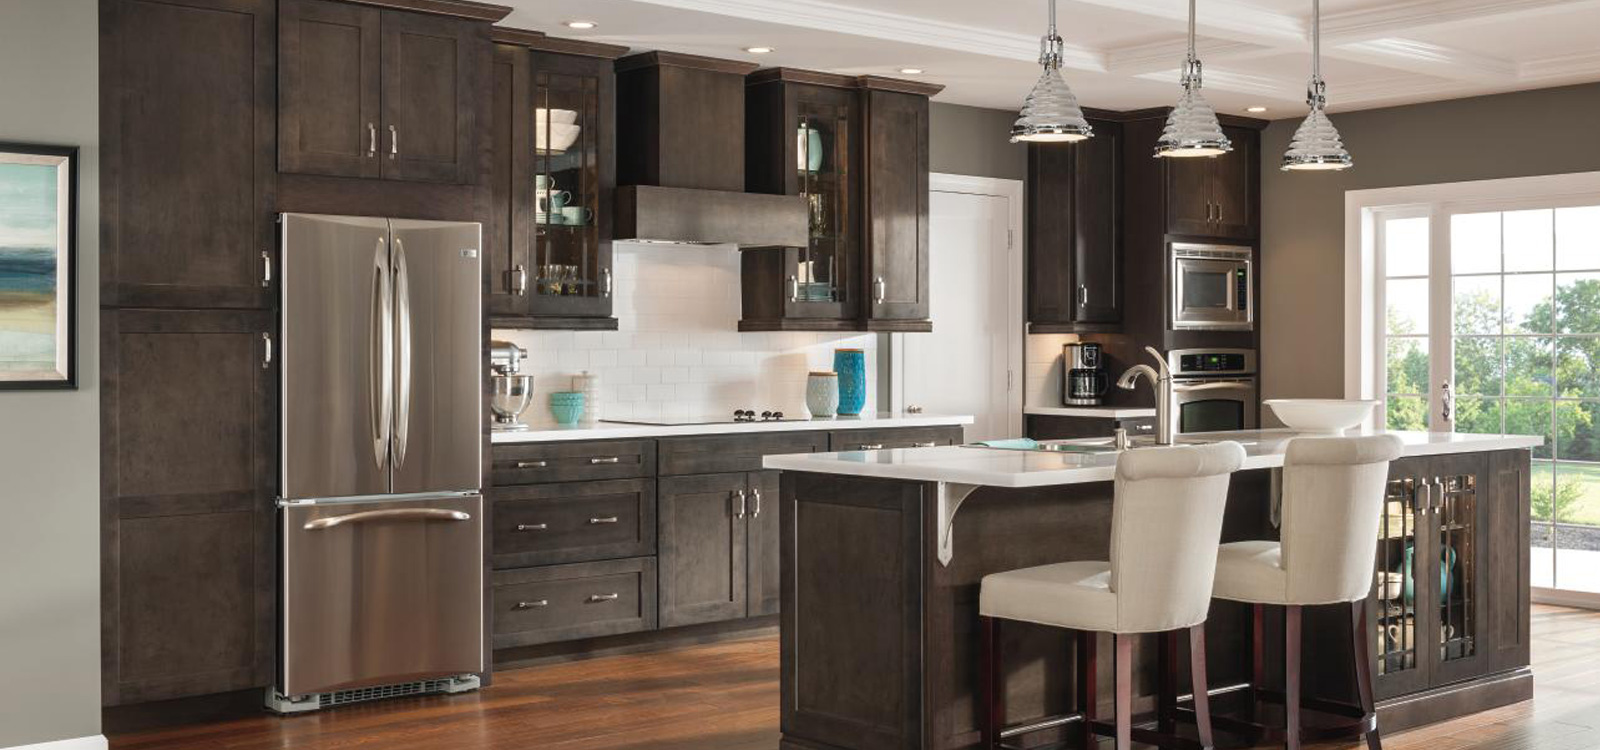 National Kitchen Bath Cabinetry Inc